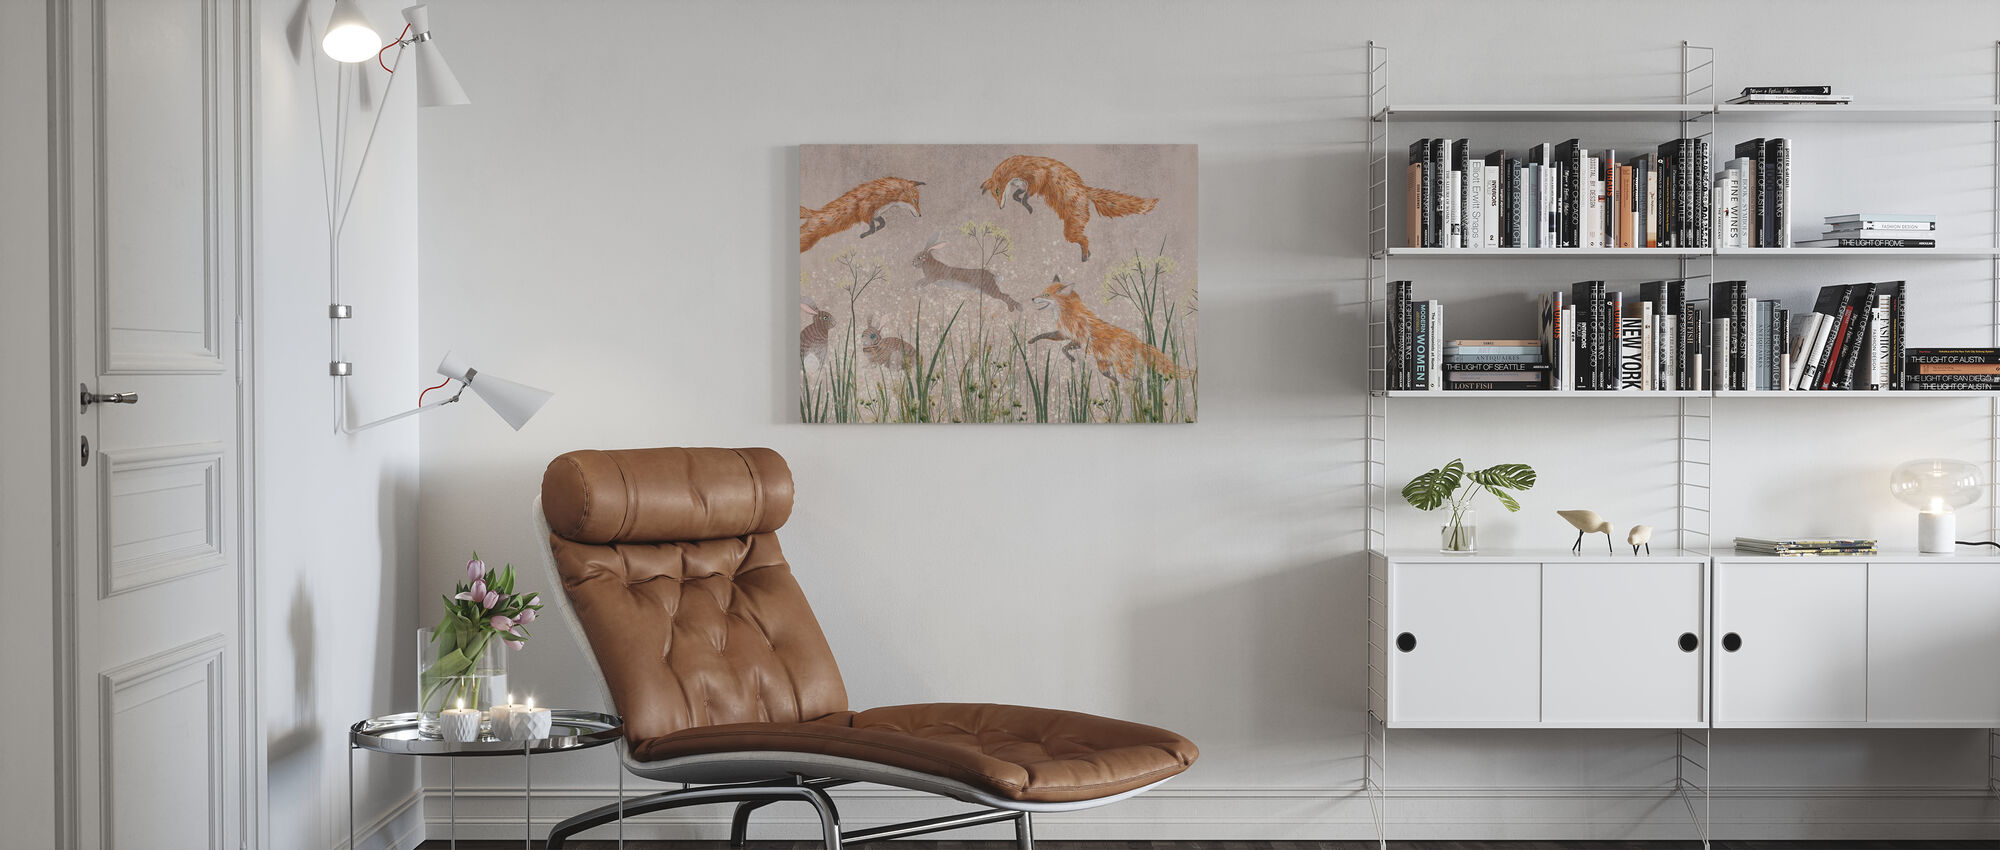 Jumping Foxes II - Canvas print - Living Room